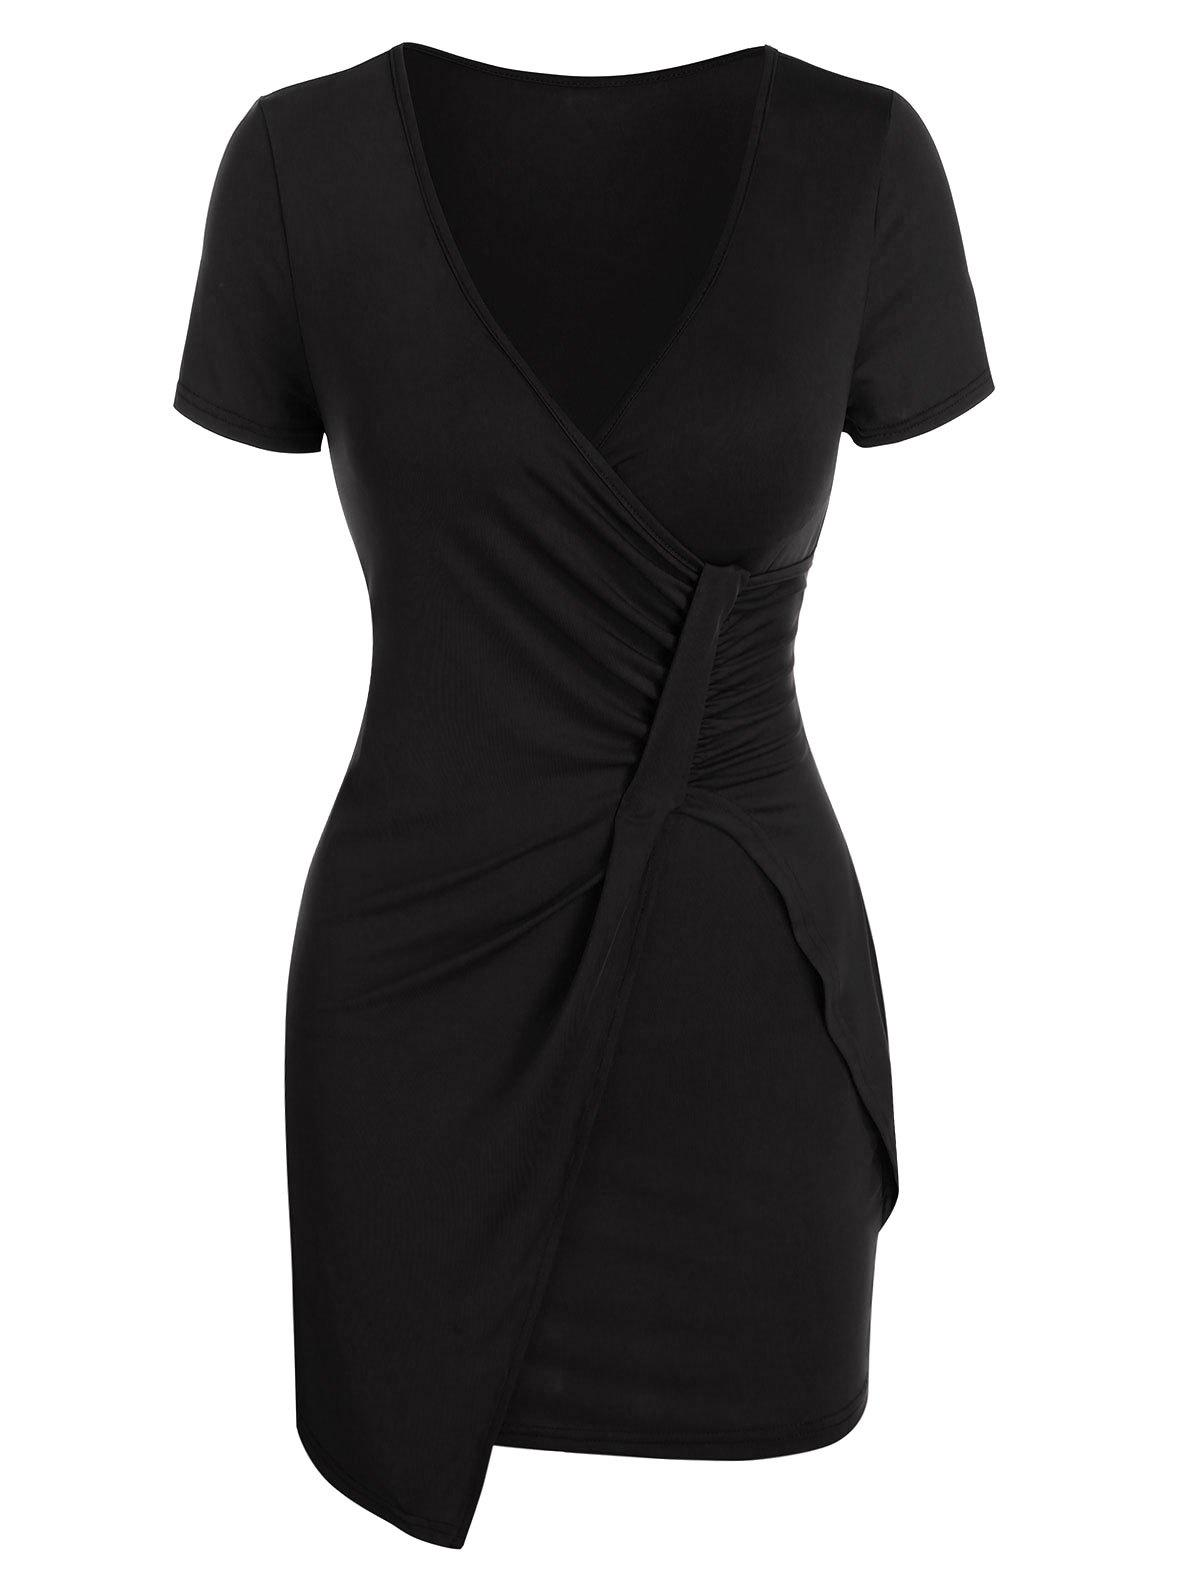 Plunge Neck Ruched Asymmetric Sheath Dress - BLACK M